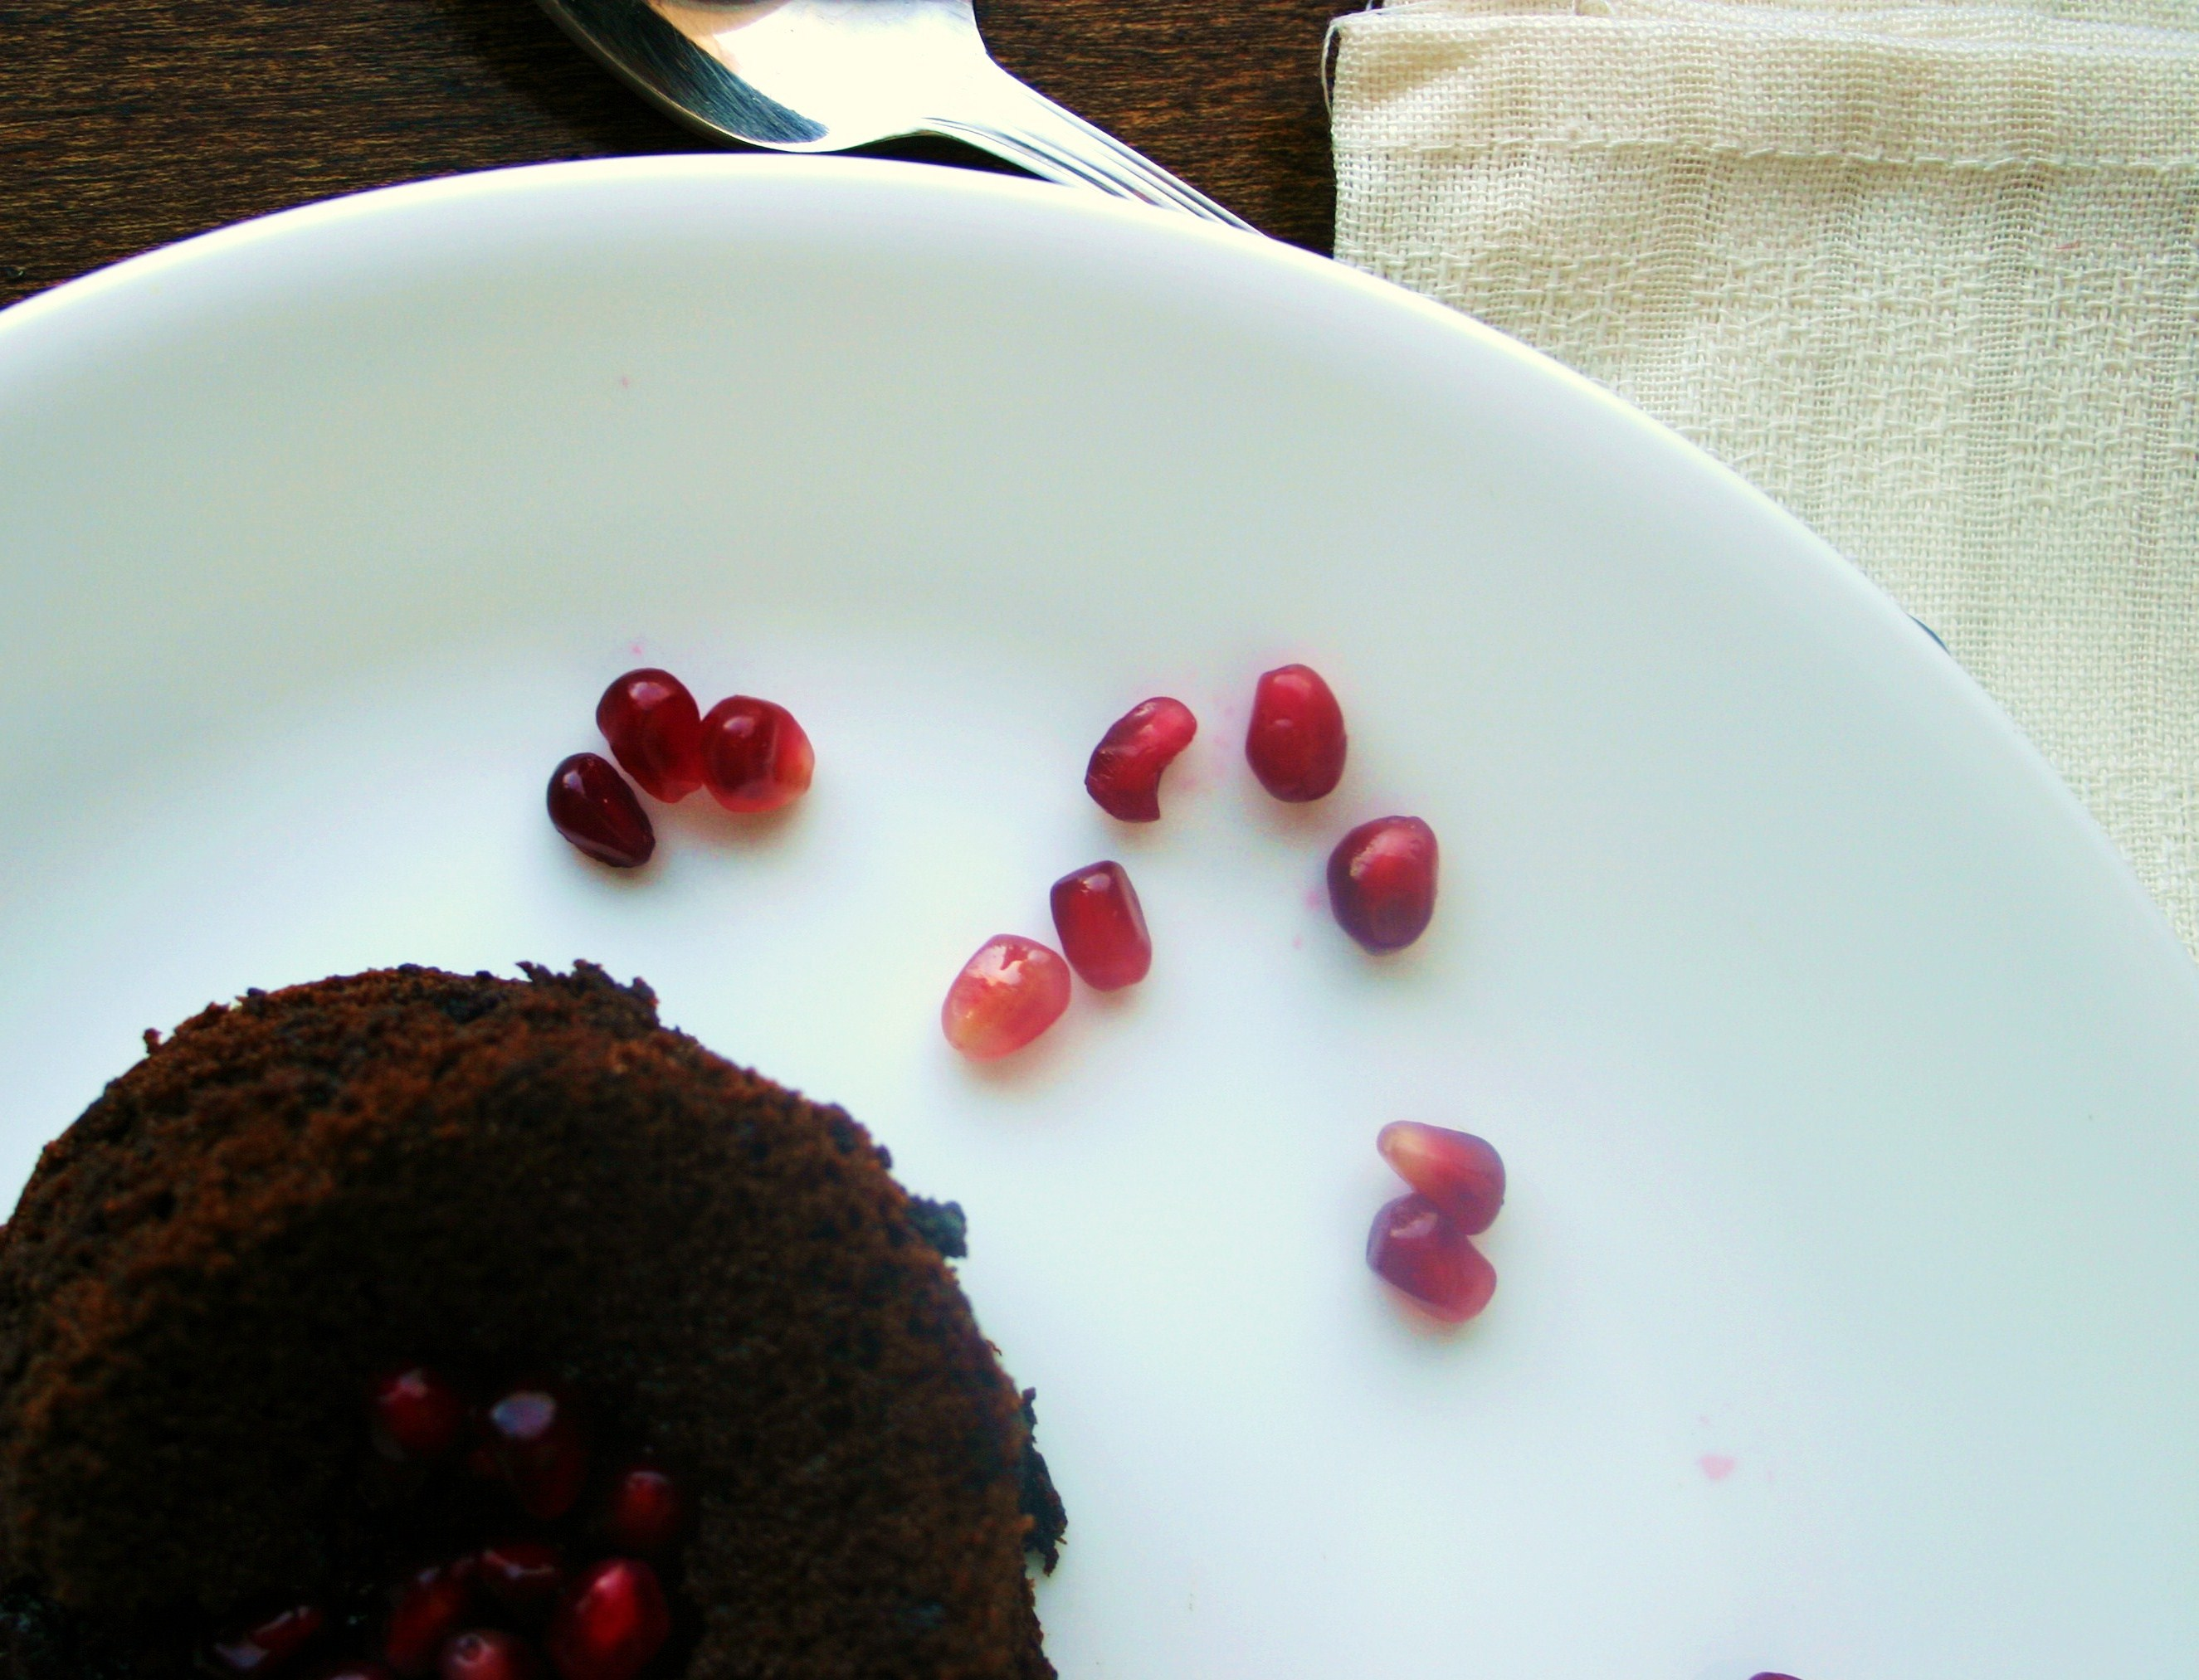 Marquis de Sade: Molten Chocolate Espresso Cake with Pomegranate